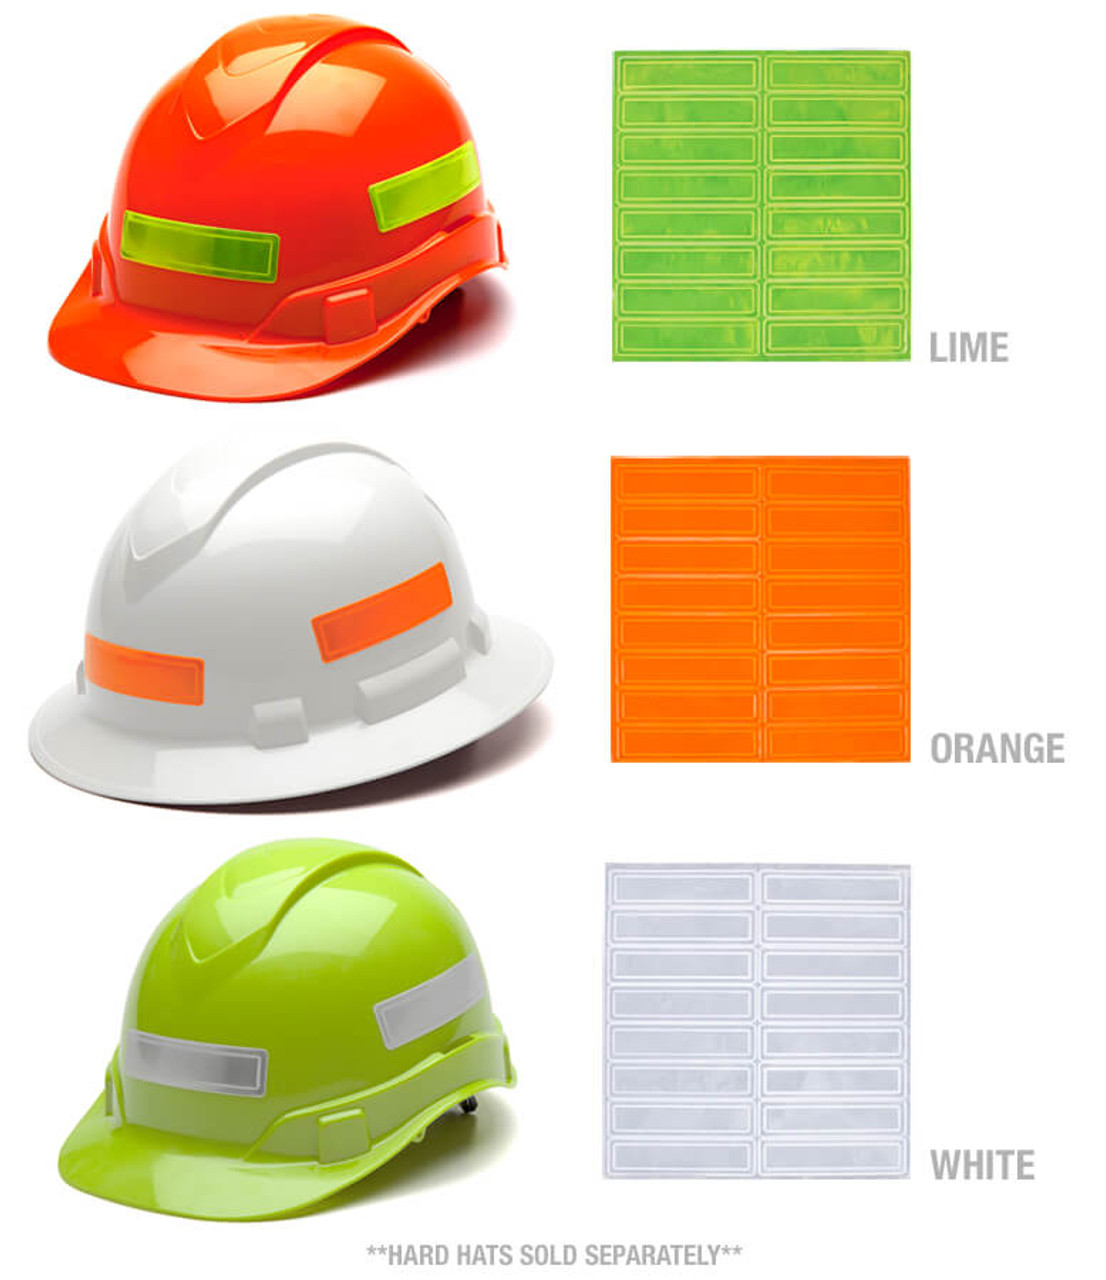 caf123a5c54 Pyramex Adhesive Reflective Strips for Hard Hats